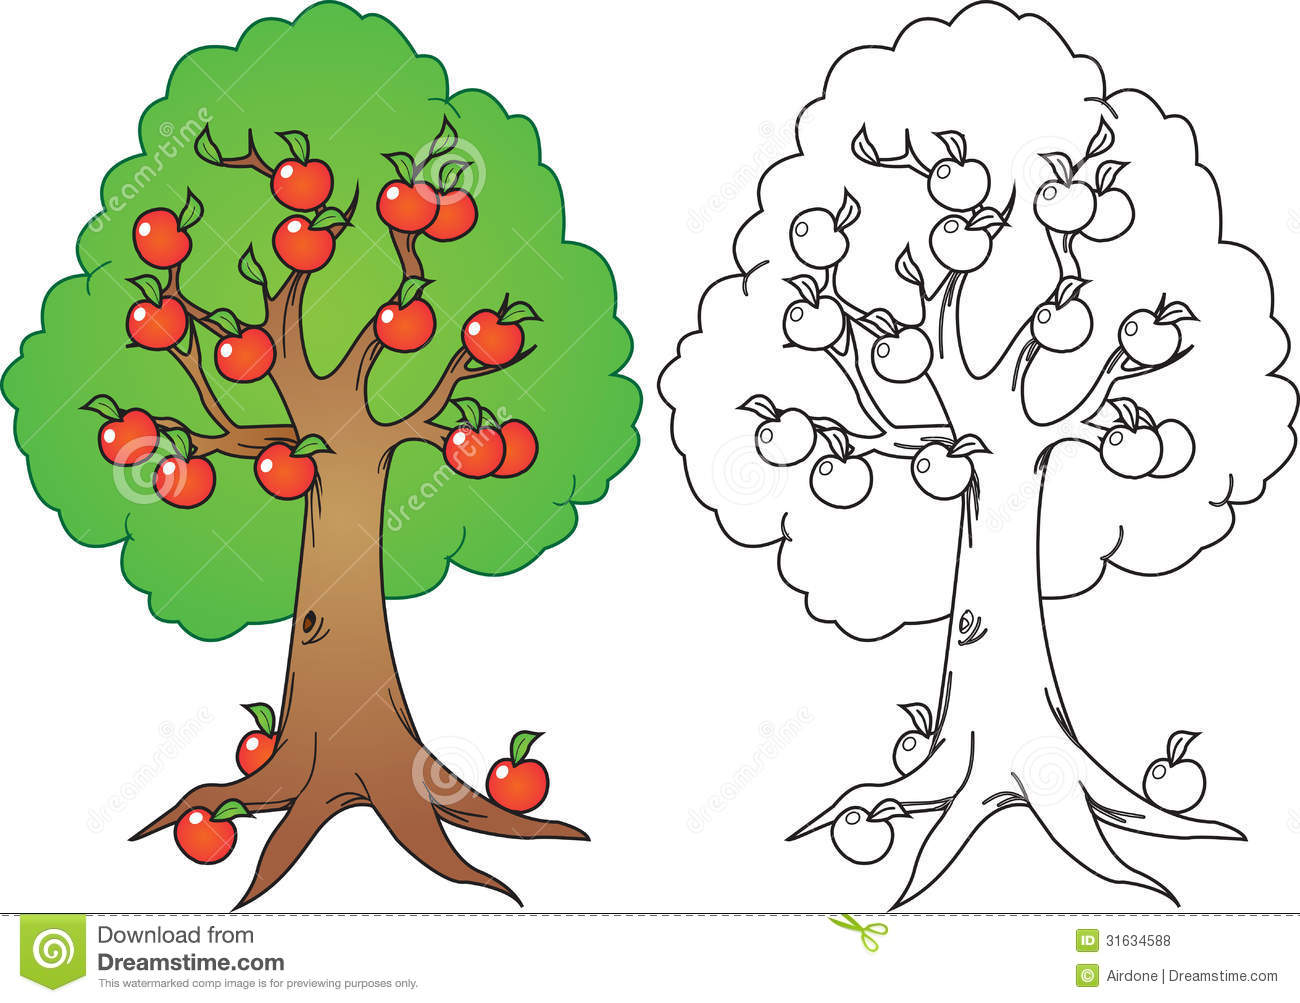 Apple trees clipart black and white.